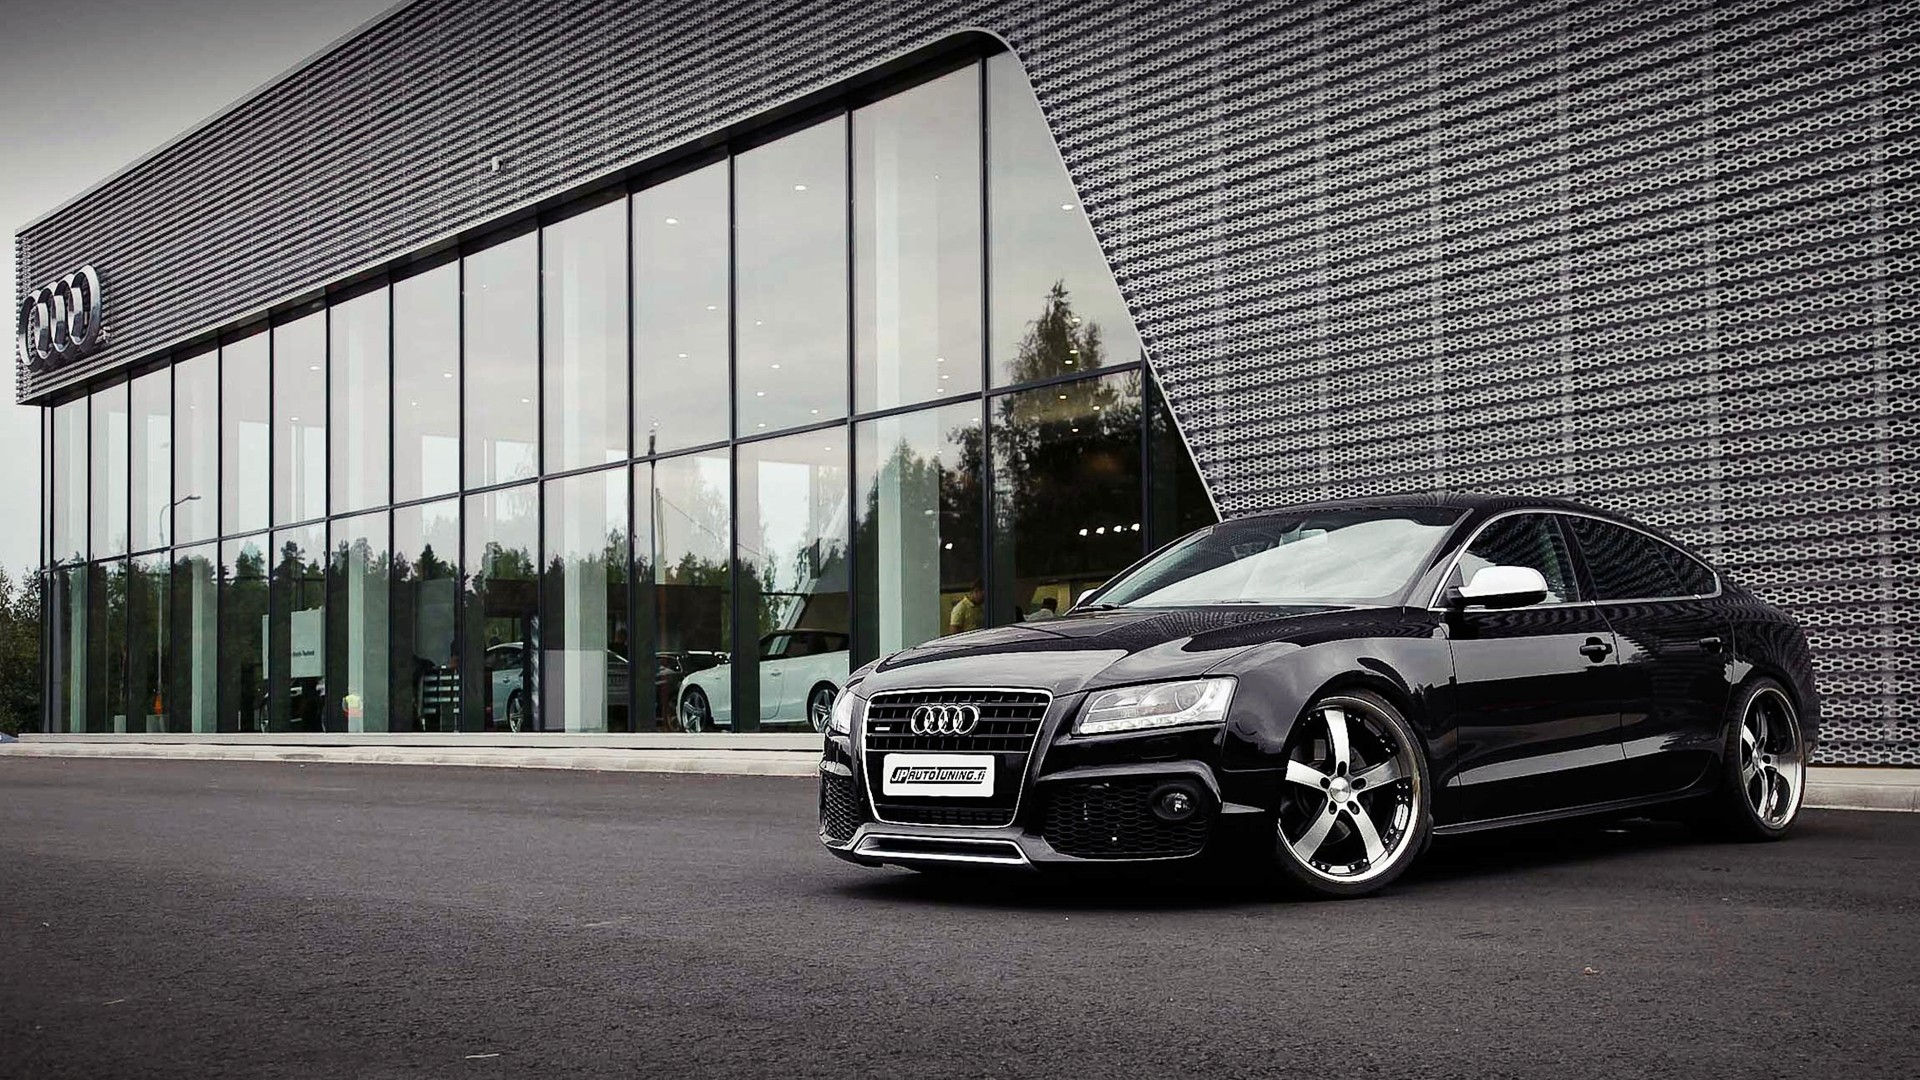 Audi RS5 HD Desktop Wallpaper HD Desktop Wallpaper 1920x1080